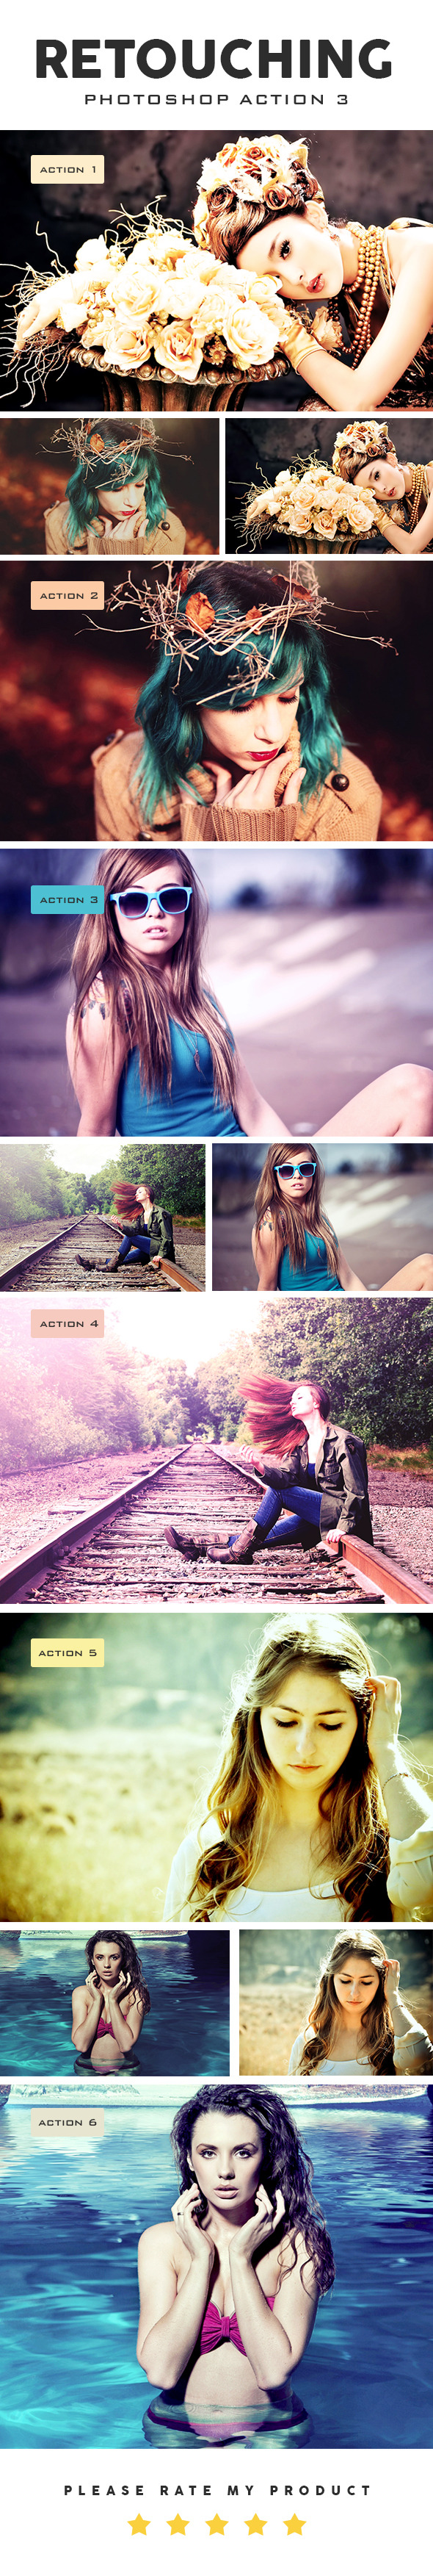 Retouching Photoshop Action 3 - Photo Effects Actions